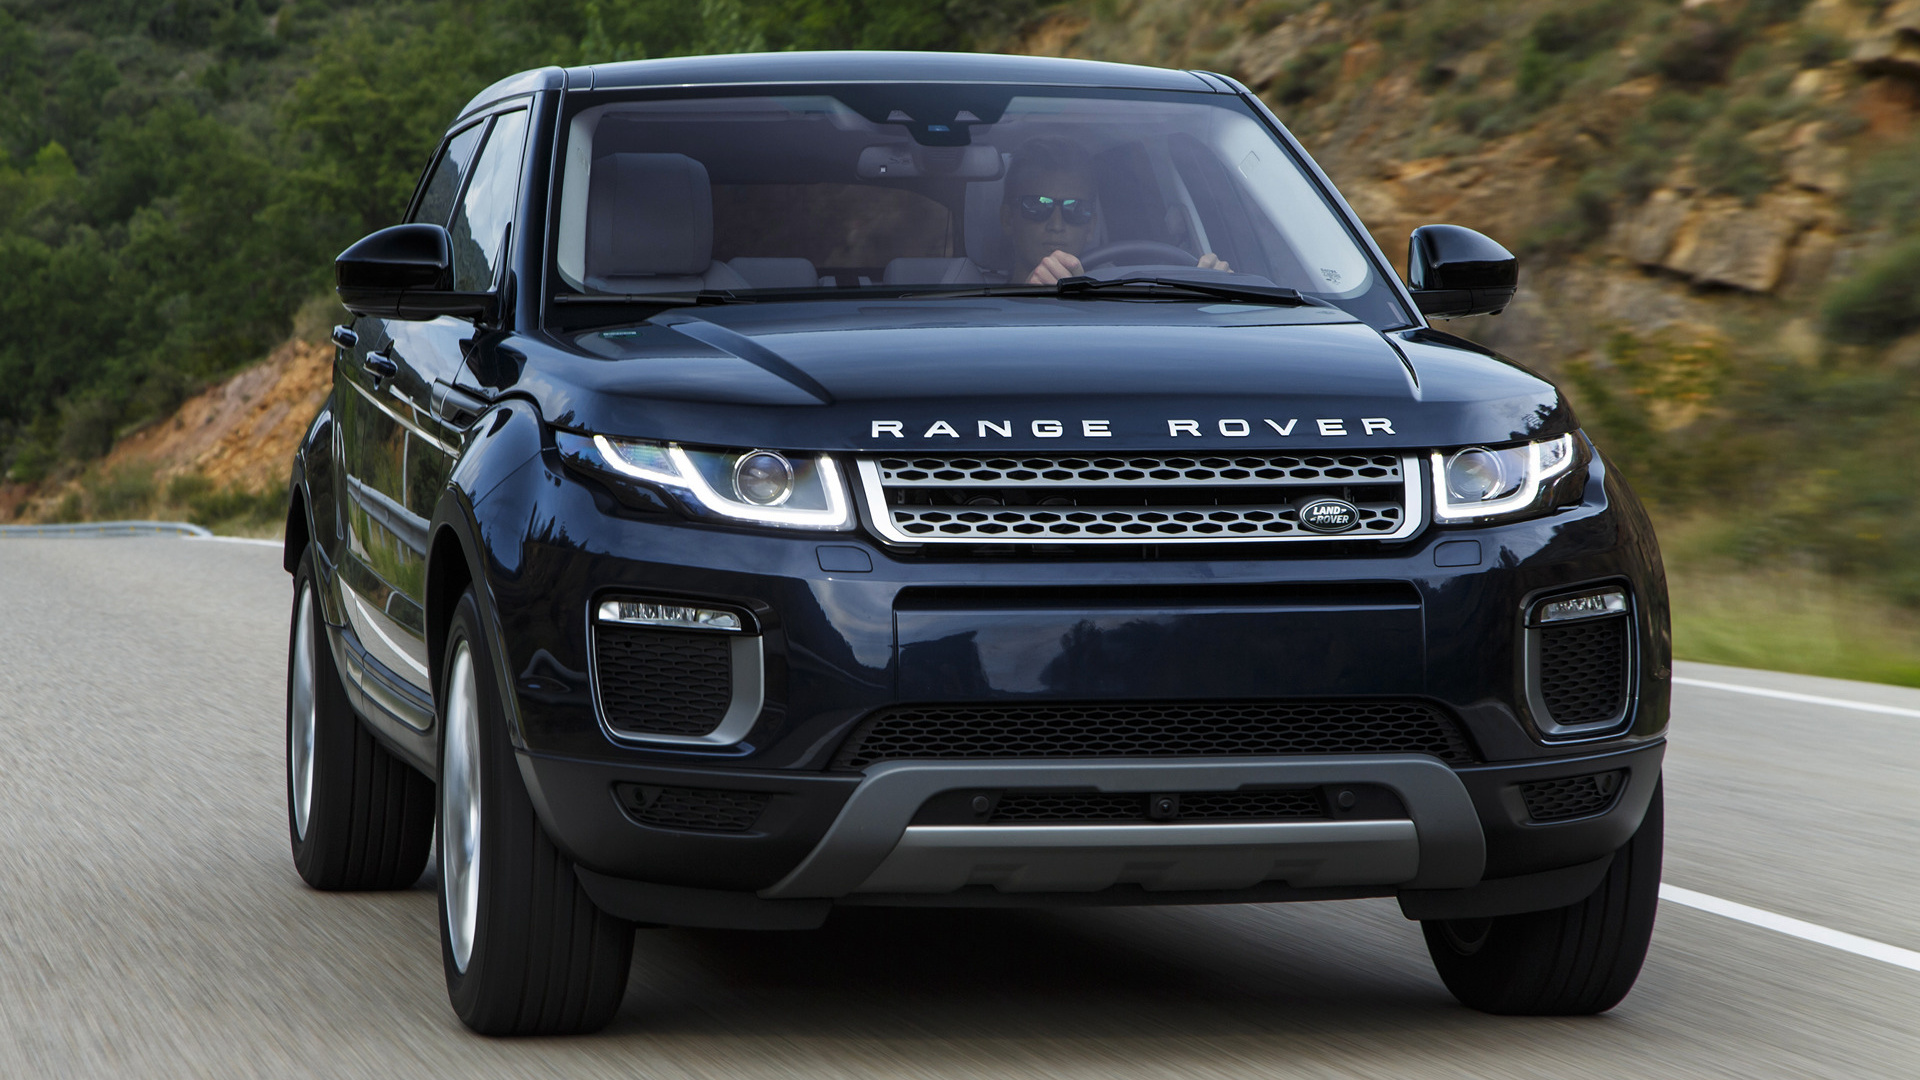 Land Rover Hse >> Range Rover Evoque (2015) Wallpapers and HD Images - Car Pixel